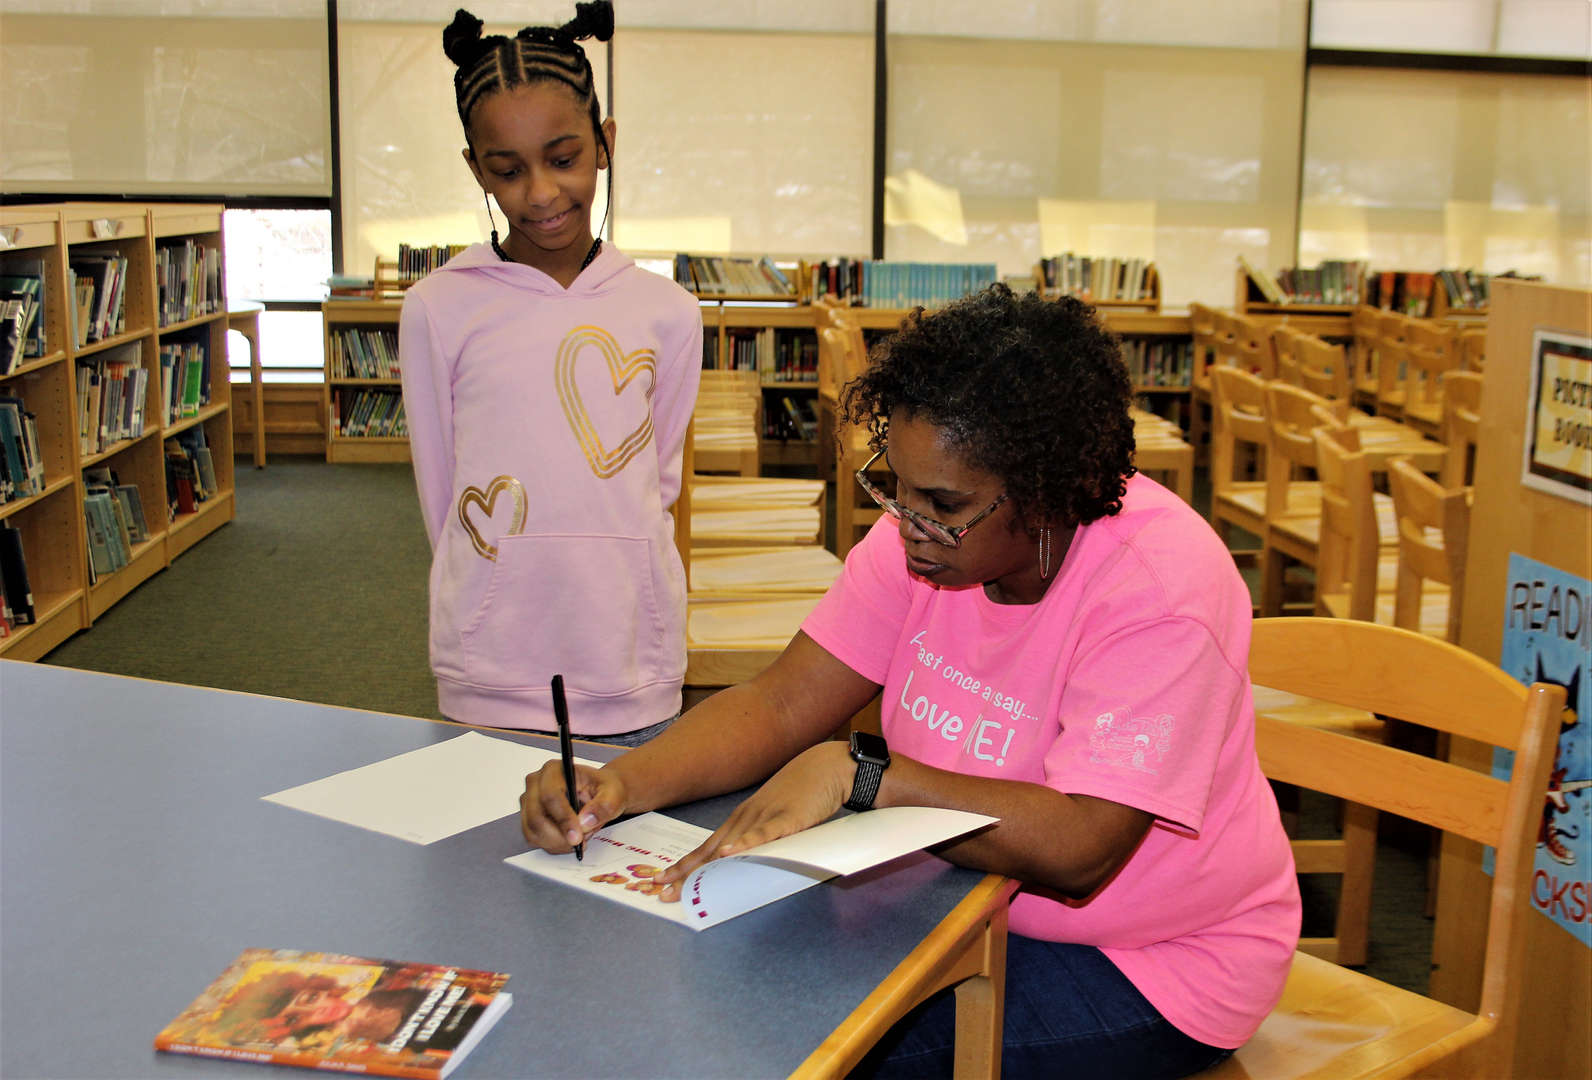 Author Julia Davis signs one of her books for a student.